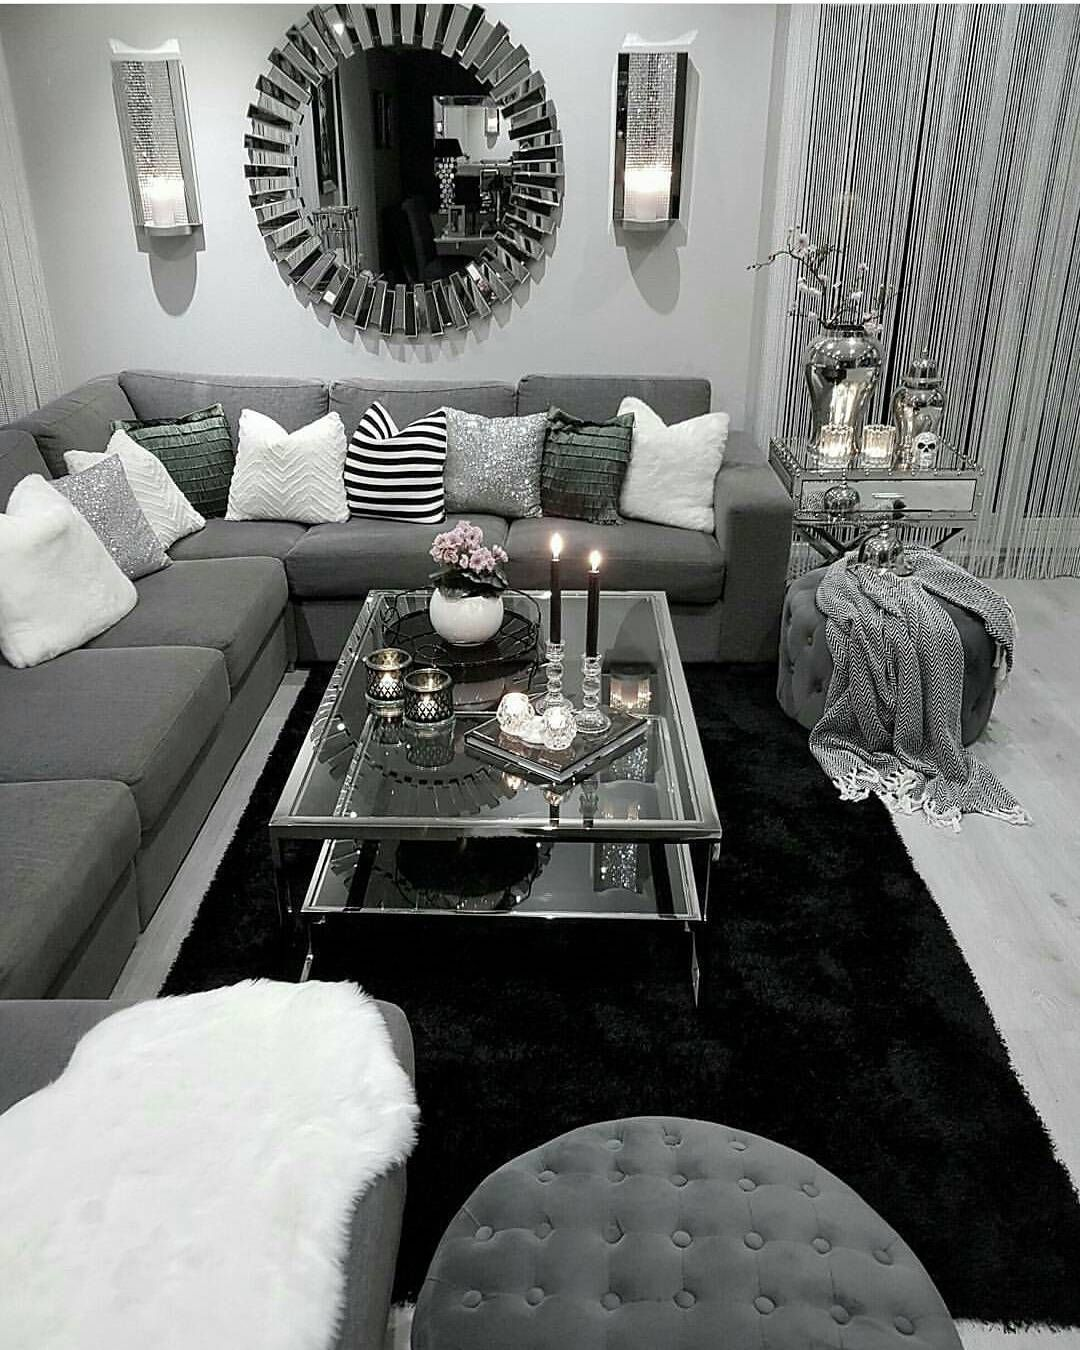 Inspiring Sitting Room Decor Ideas For Inviting And Cozy: Pin By Sharon She So Fabulous . On APARTMENT Ideas And